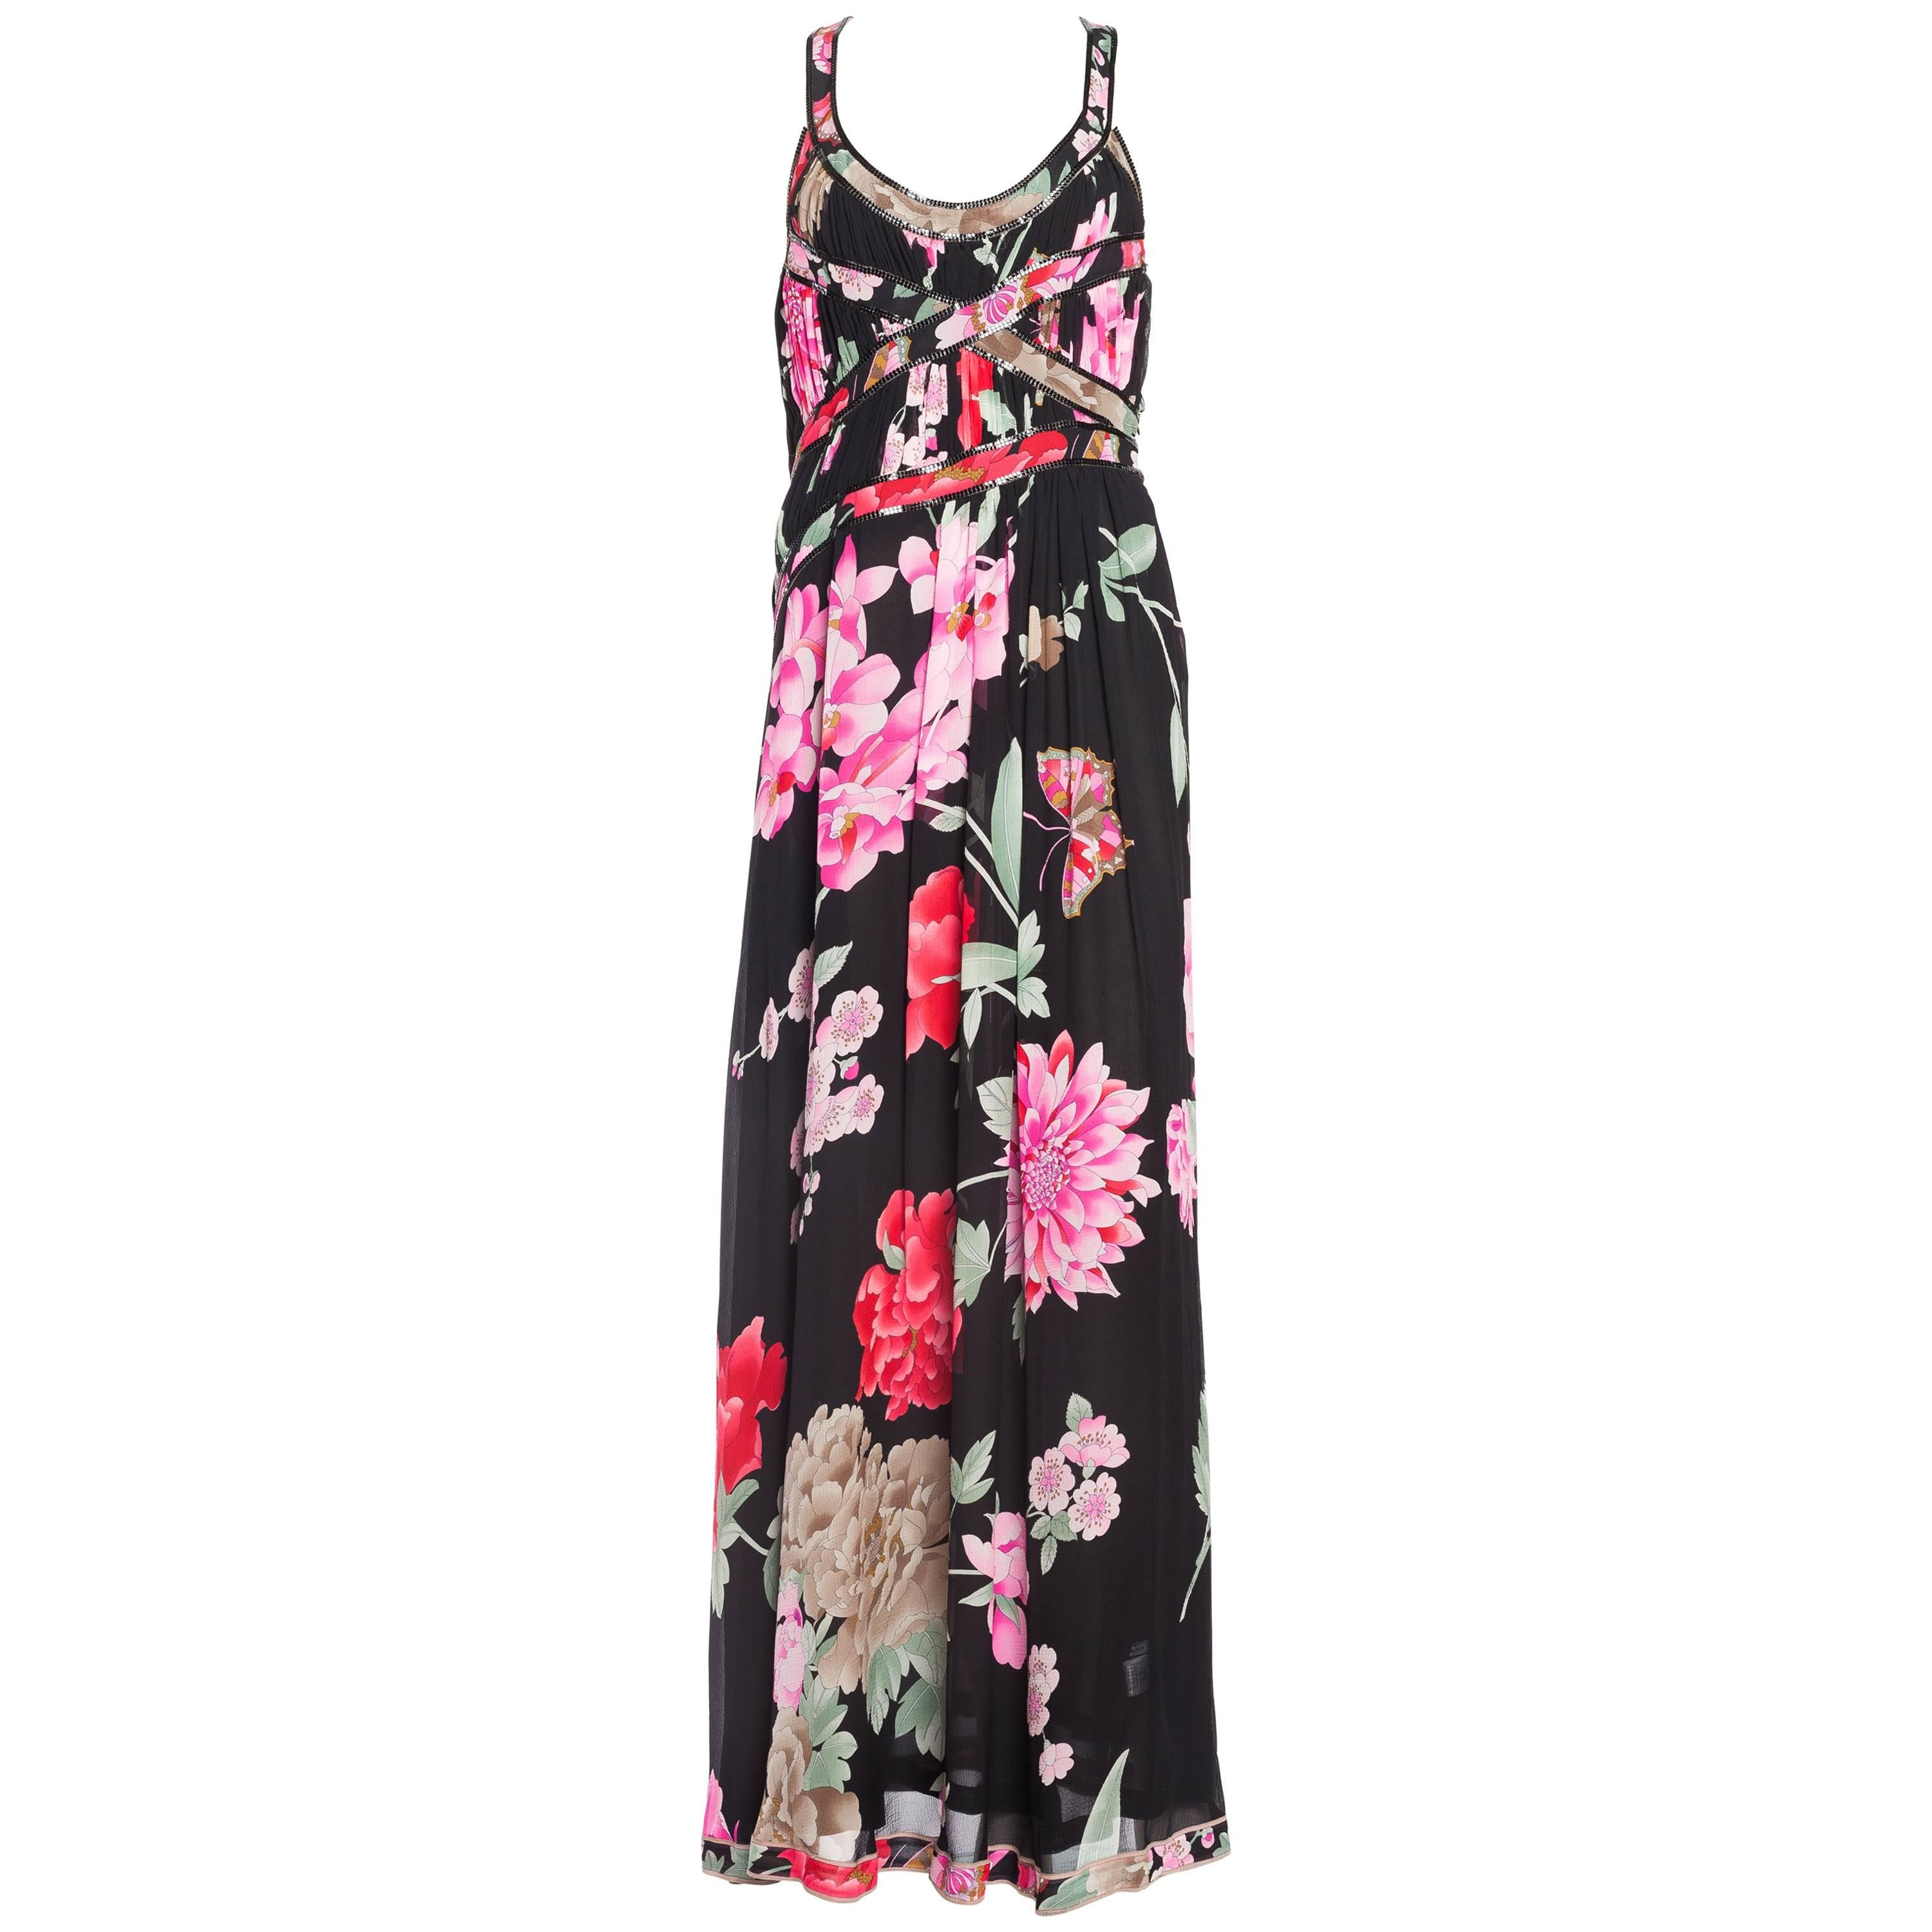 1990S LEONARD Pink & Black Silk Chiffon Tropical Floral Gown With Metal Mesh Tr